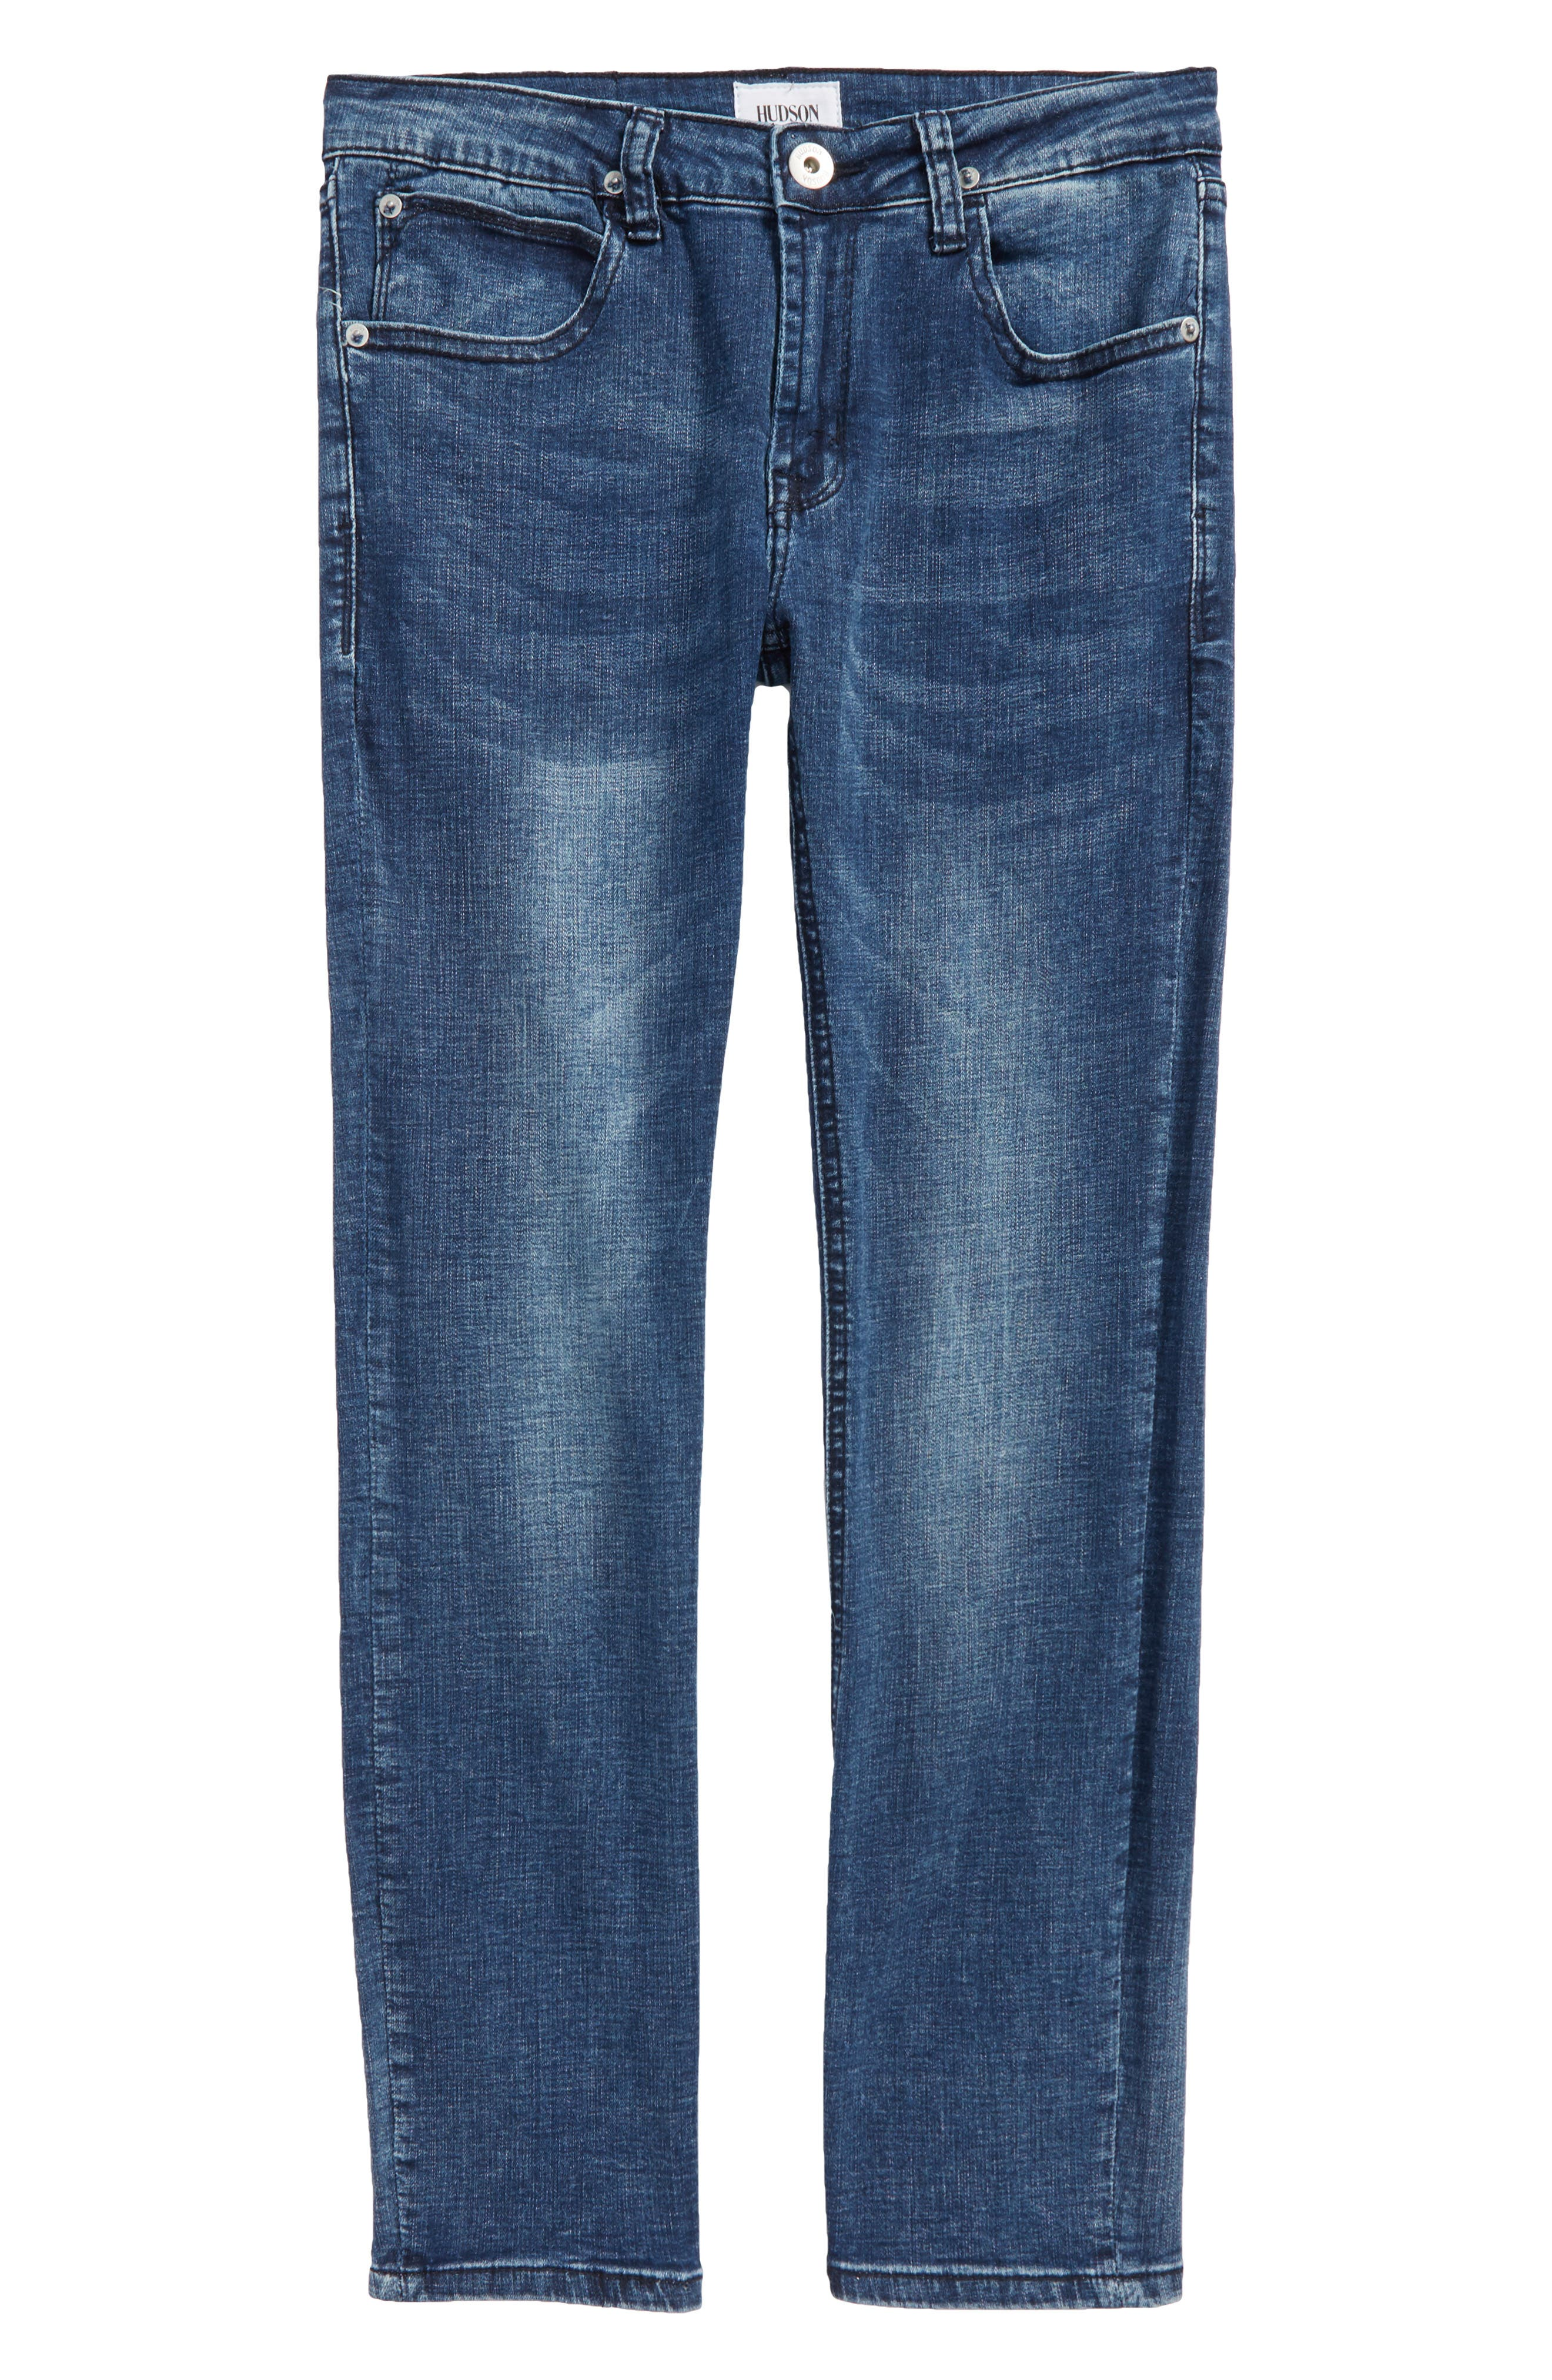 Jagger Slim Fit Straight Leg Jeans,                         Main,                         color, Desert Wash